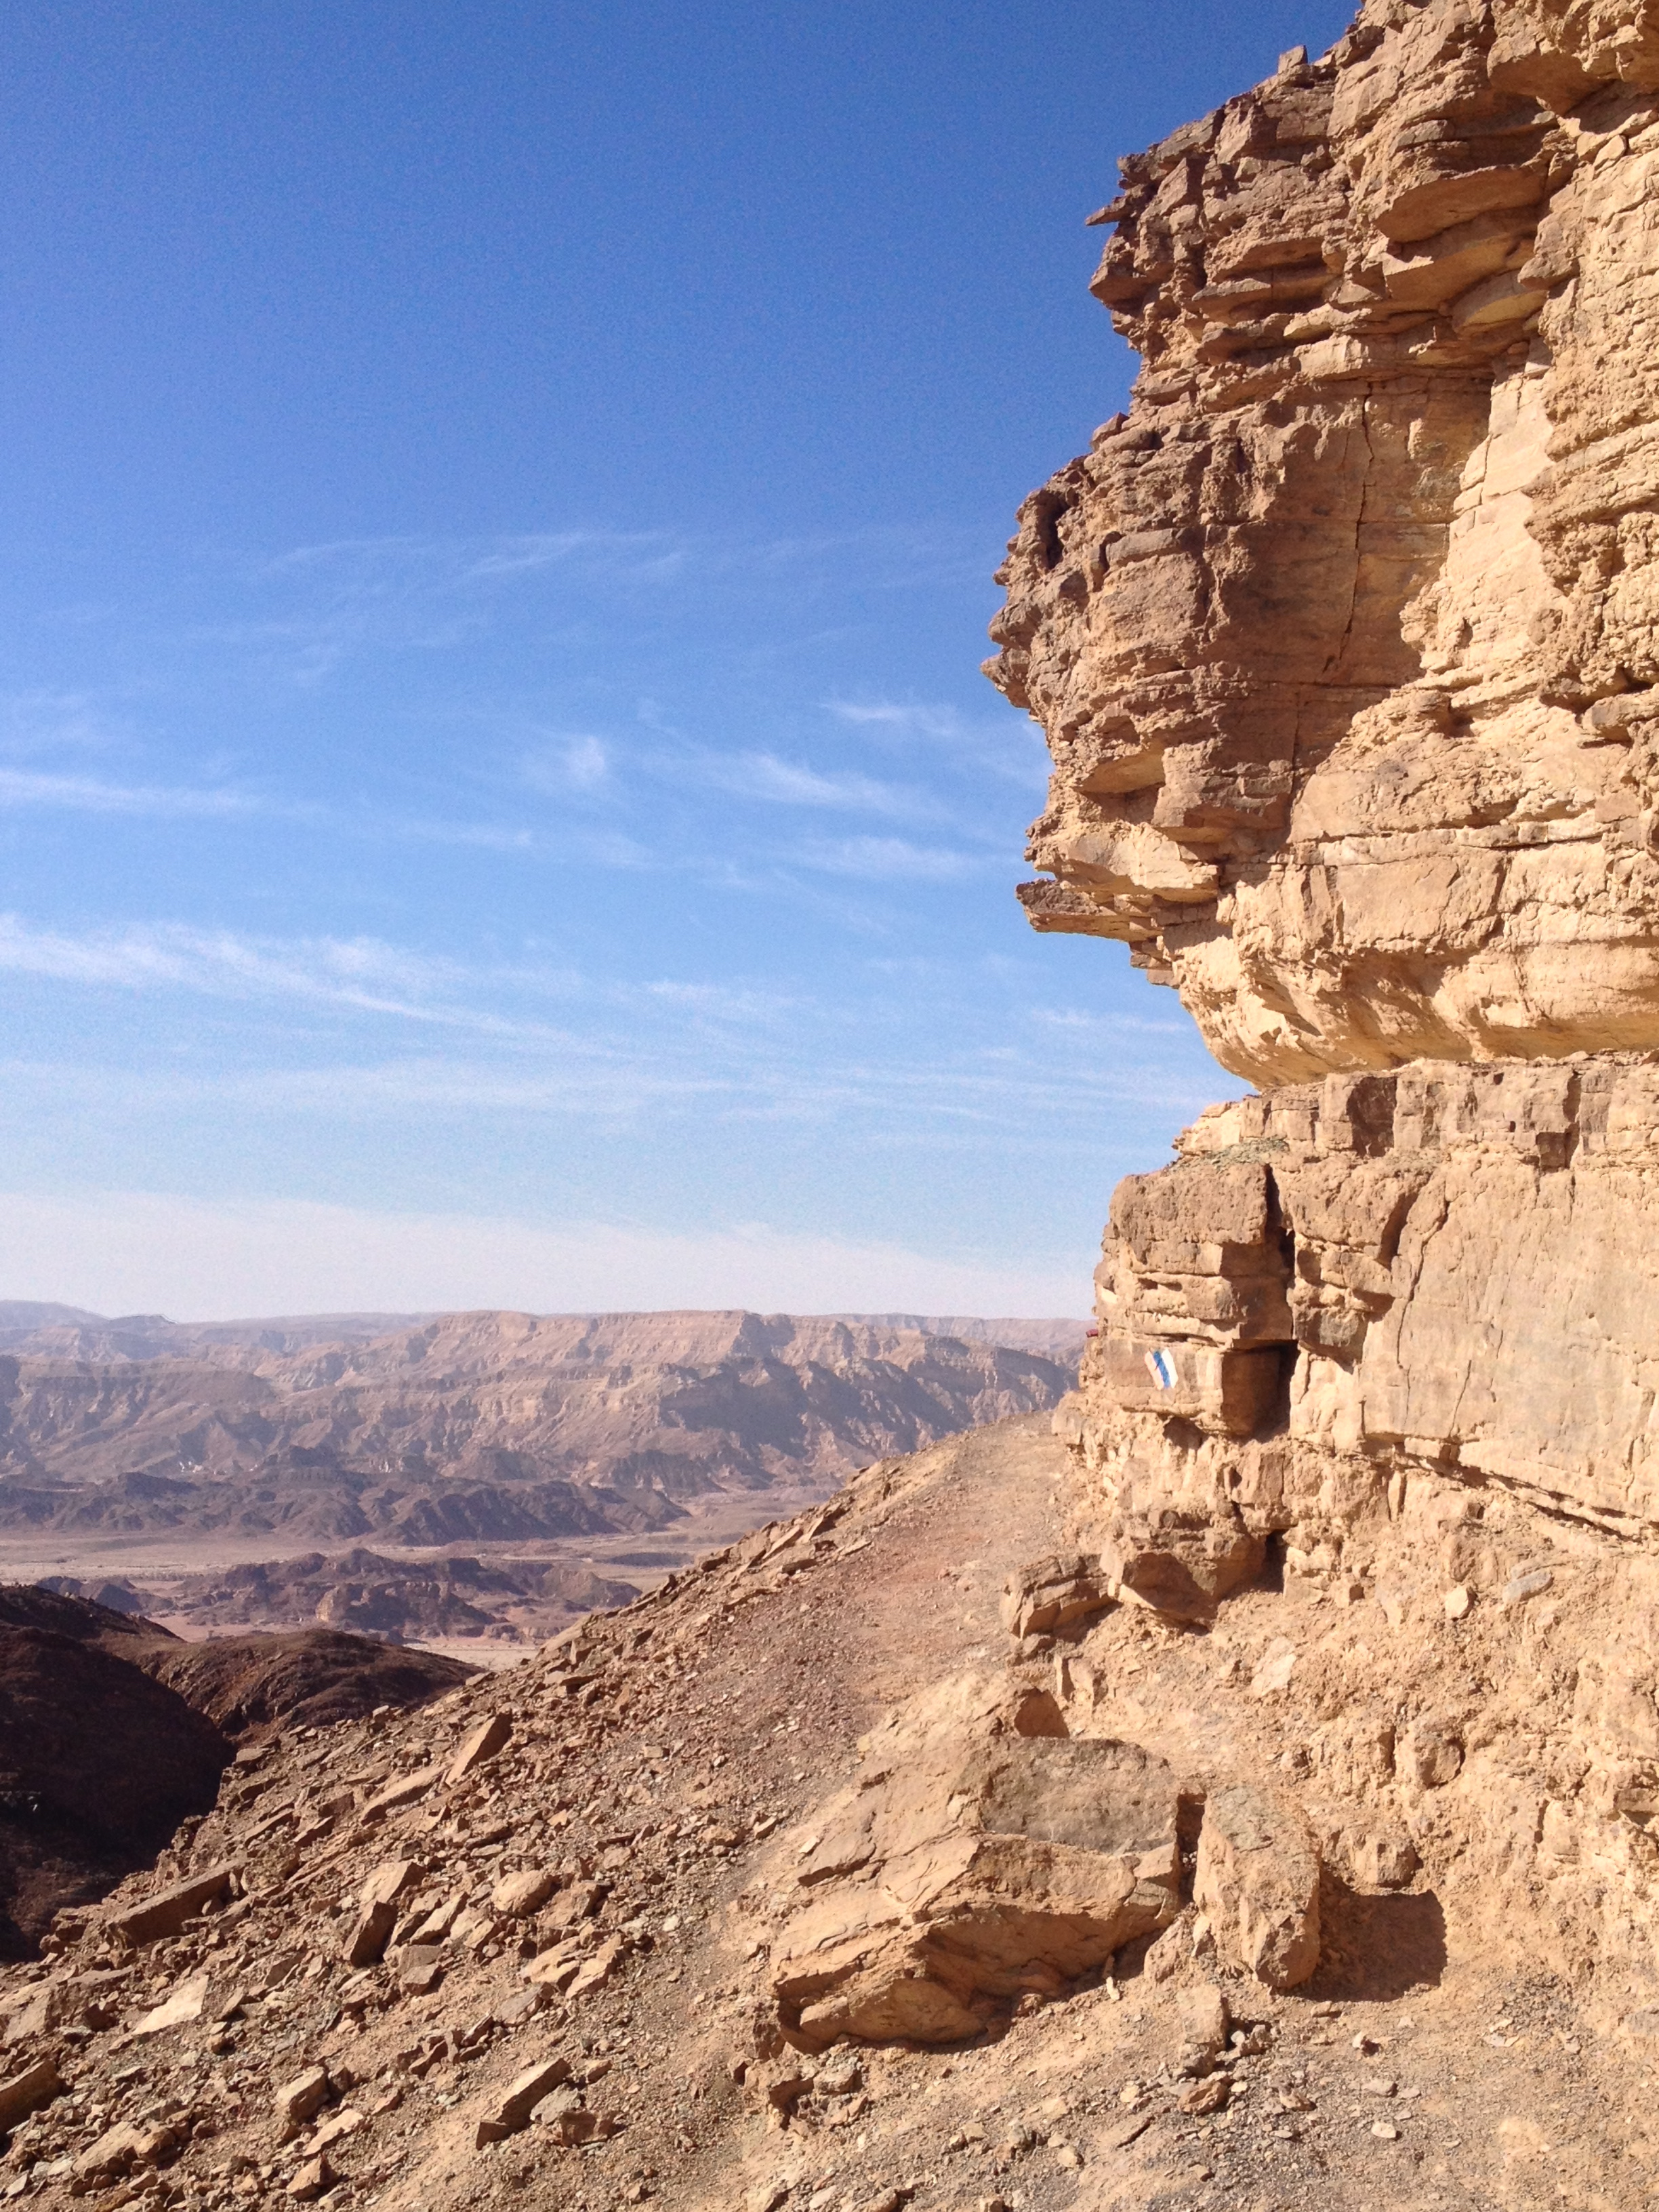 Mount Timna